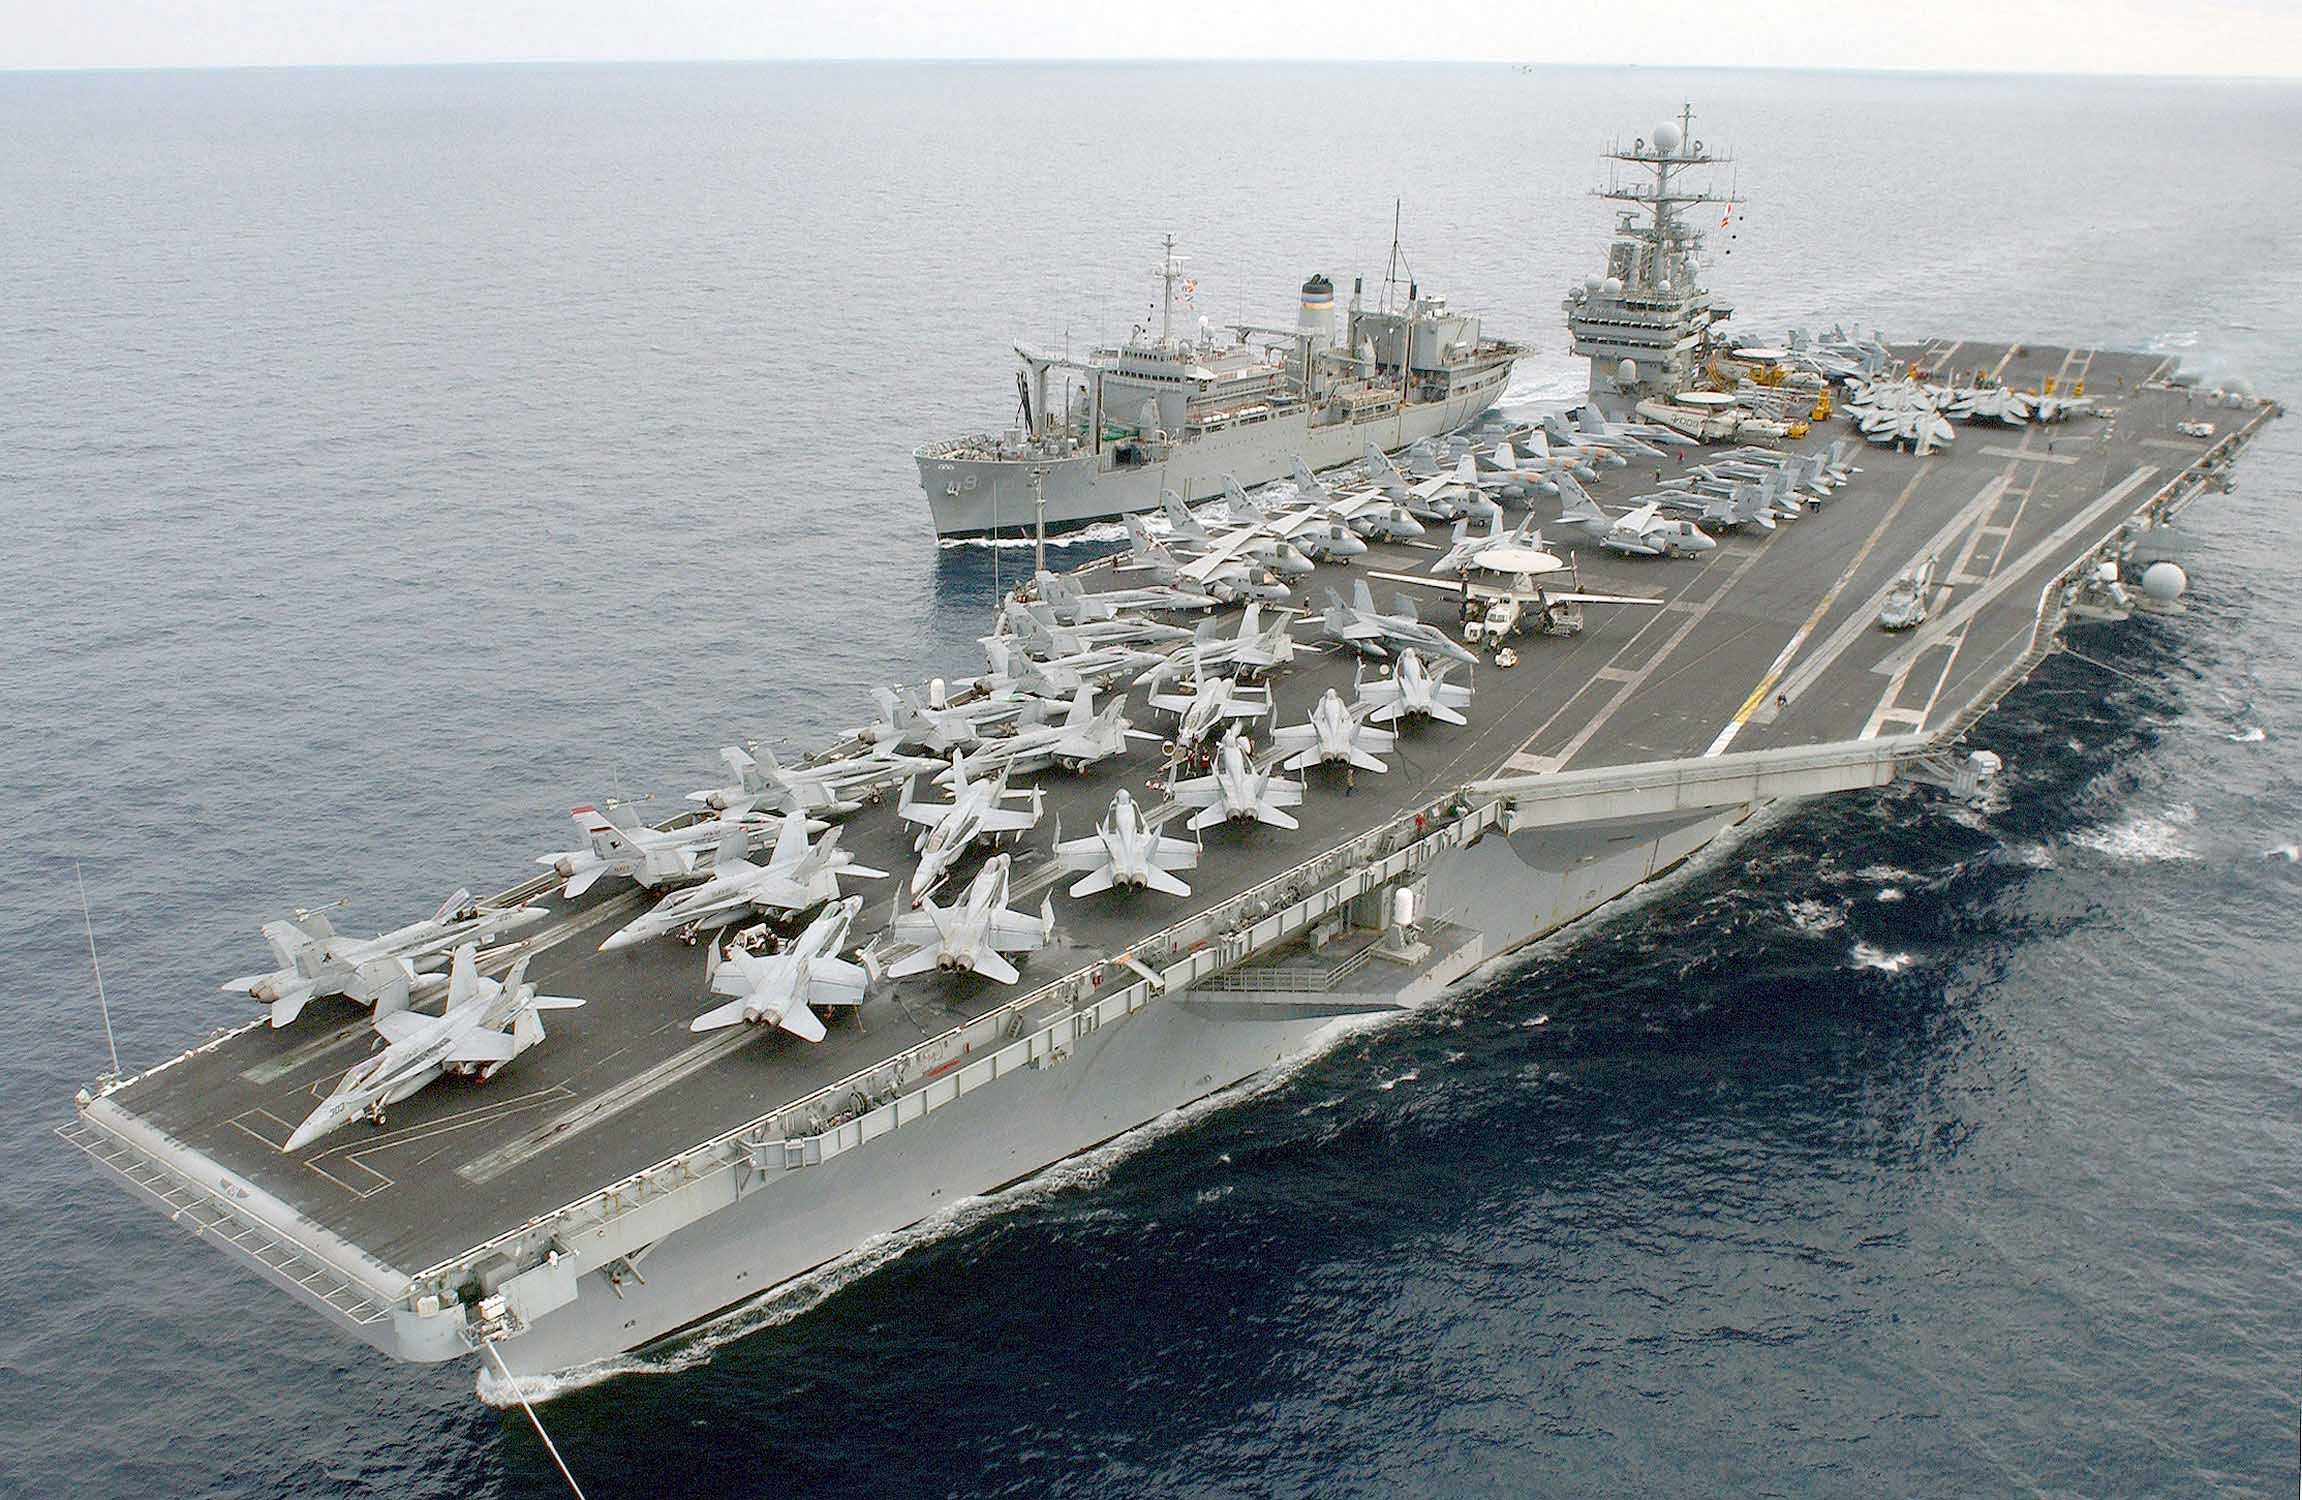 USS Harry S. Truman (CVN-75) - Nimitz class Aircraft Carrier (USA)